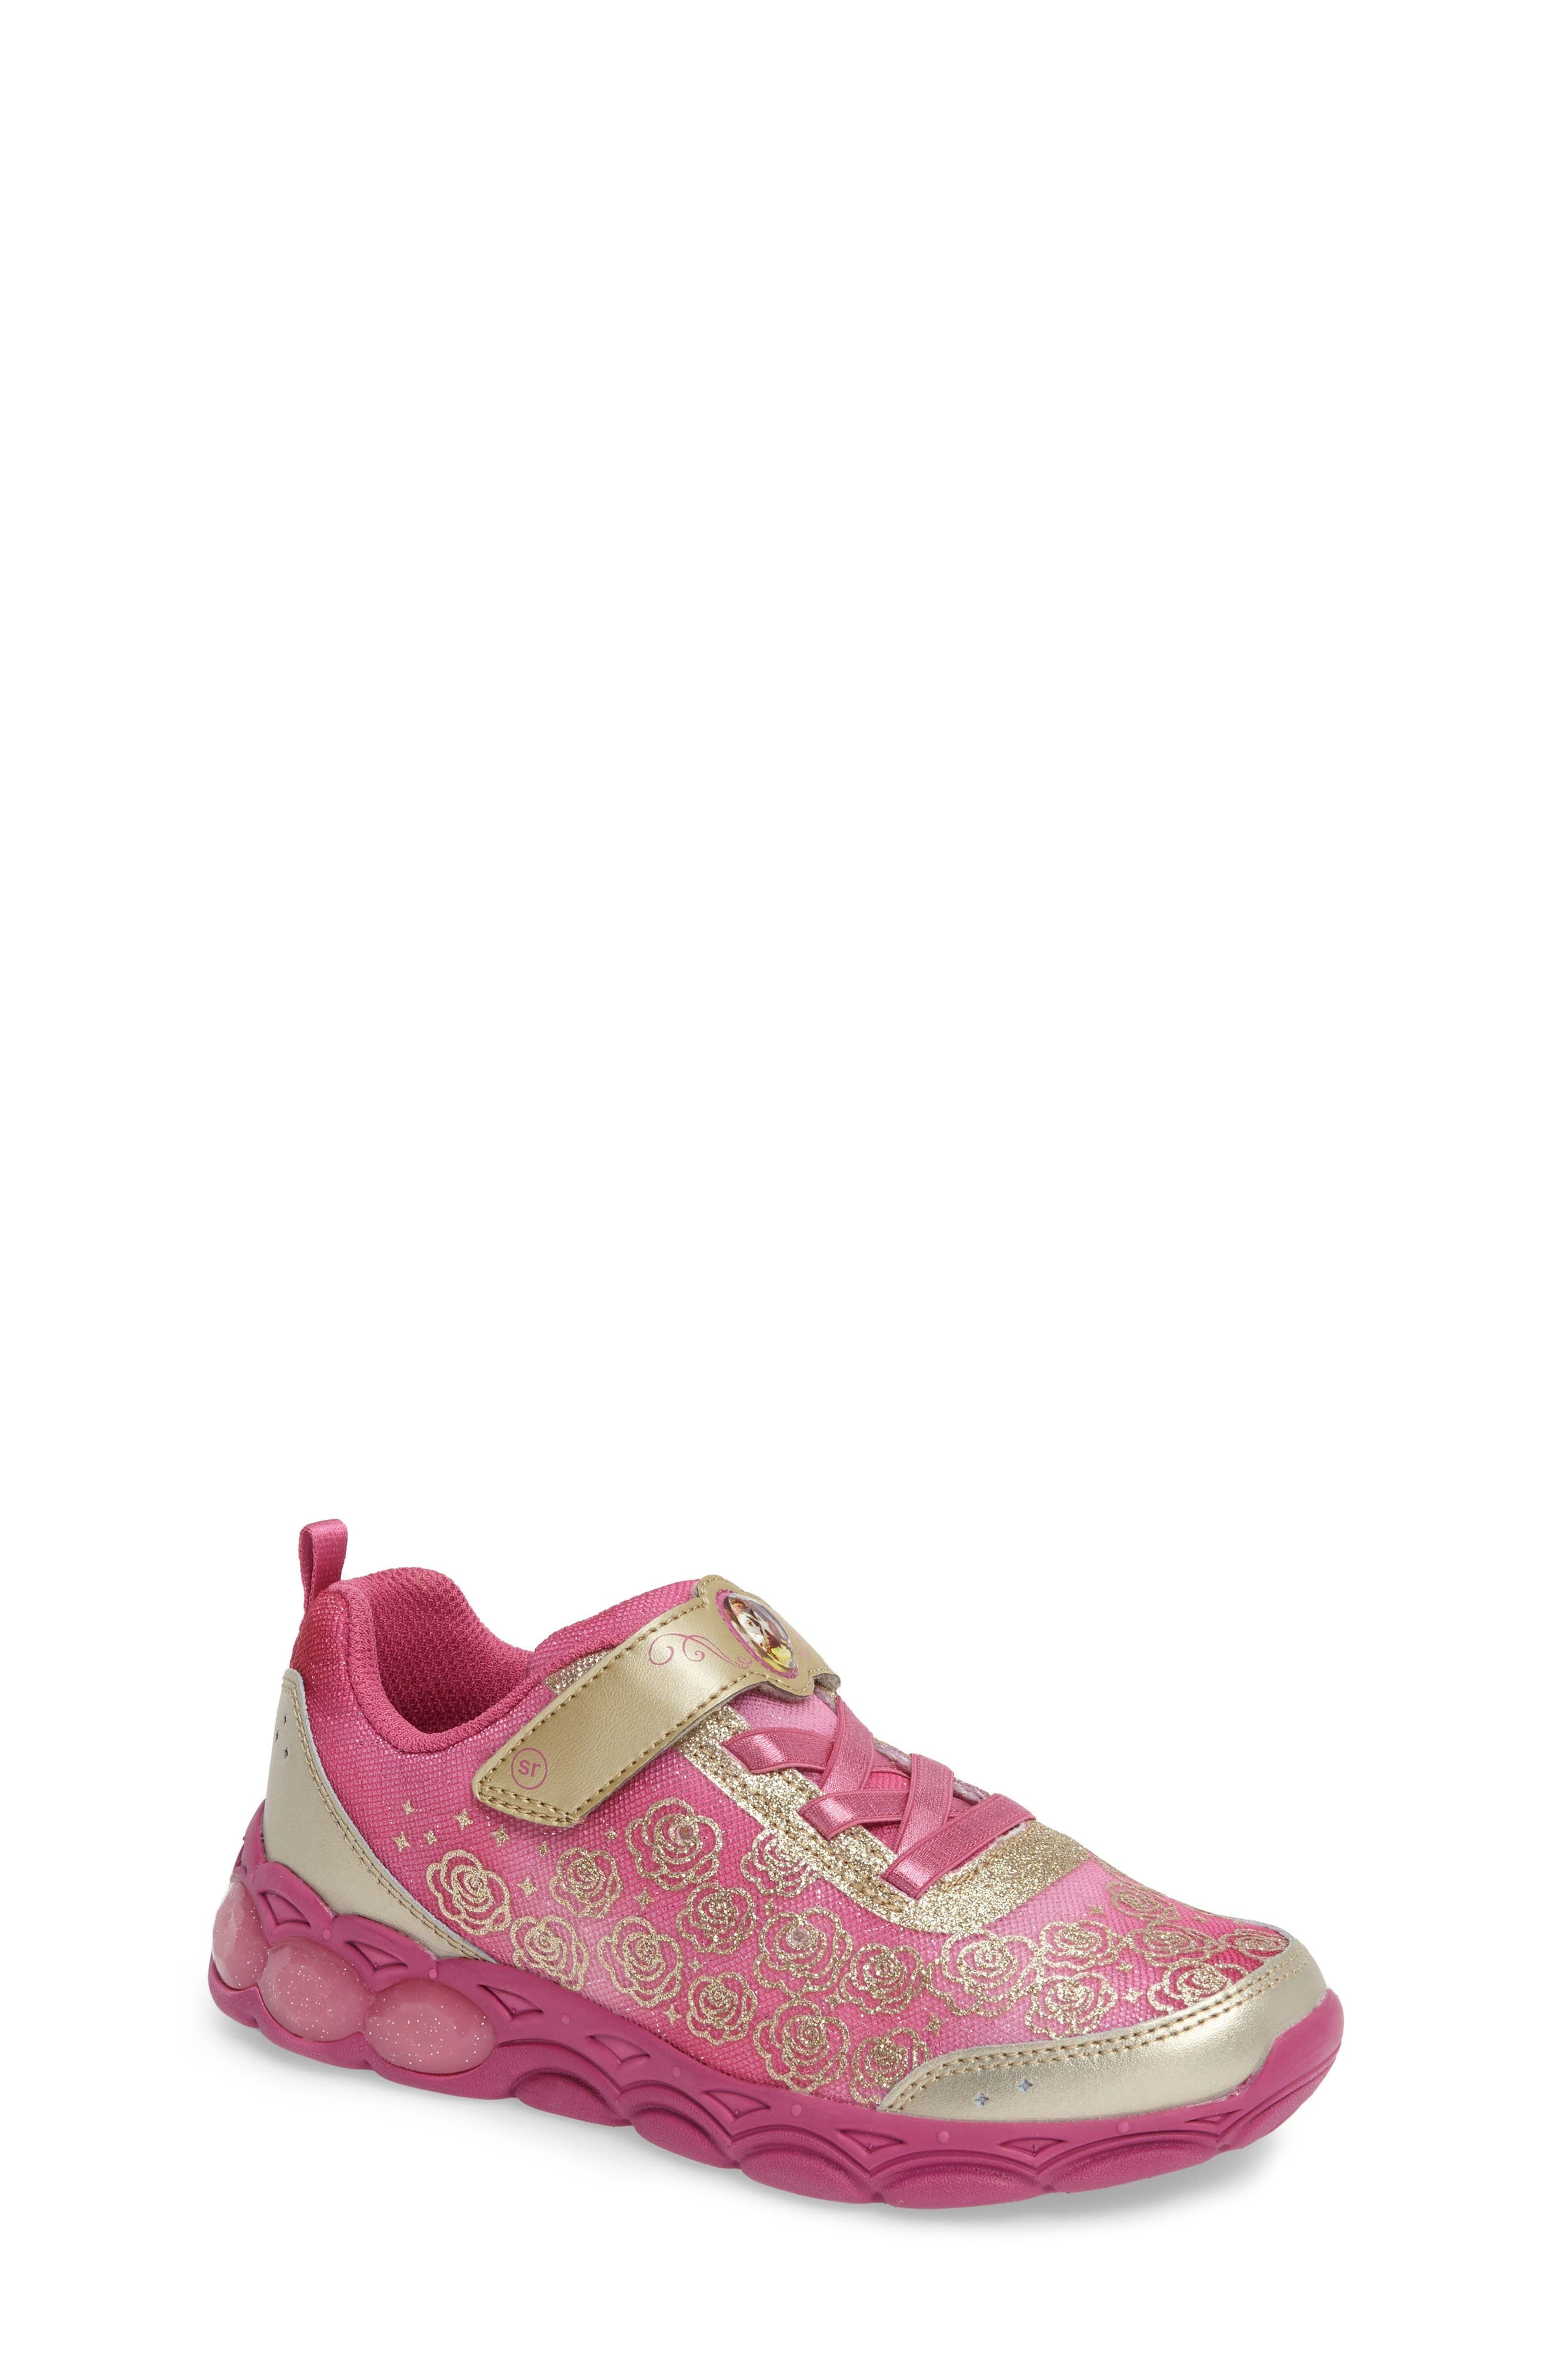 Stride Rite Disney Belle of the Ball Sneaker (Walker, Toddler & Little Kid)